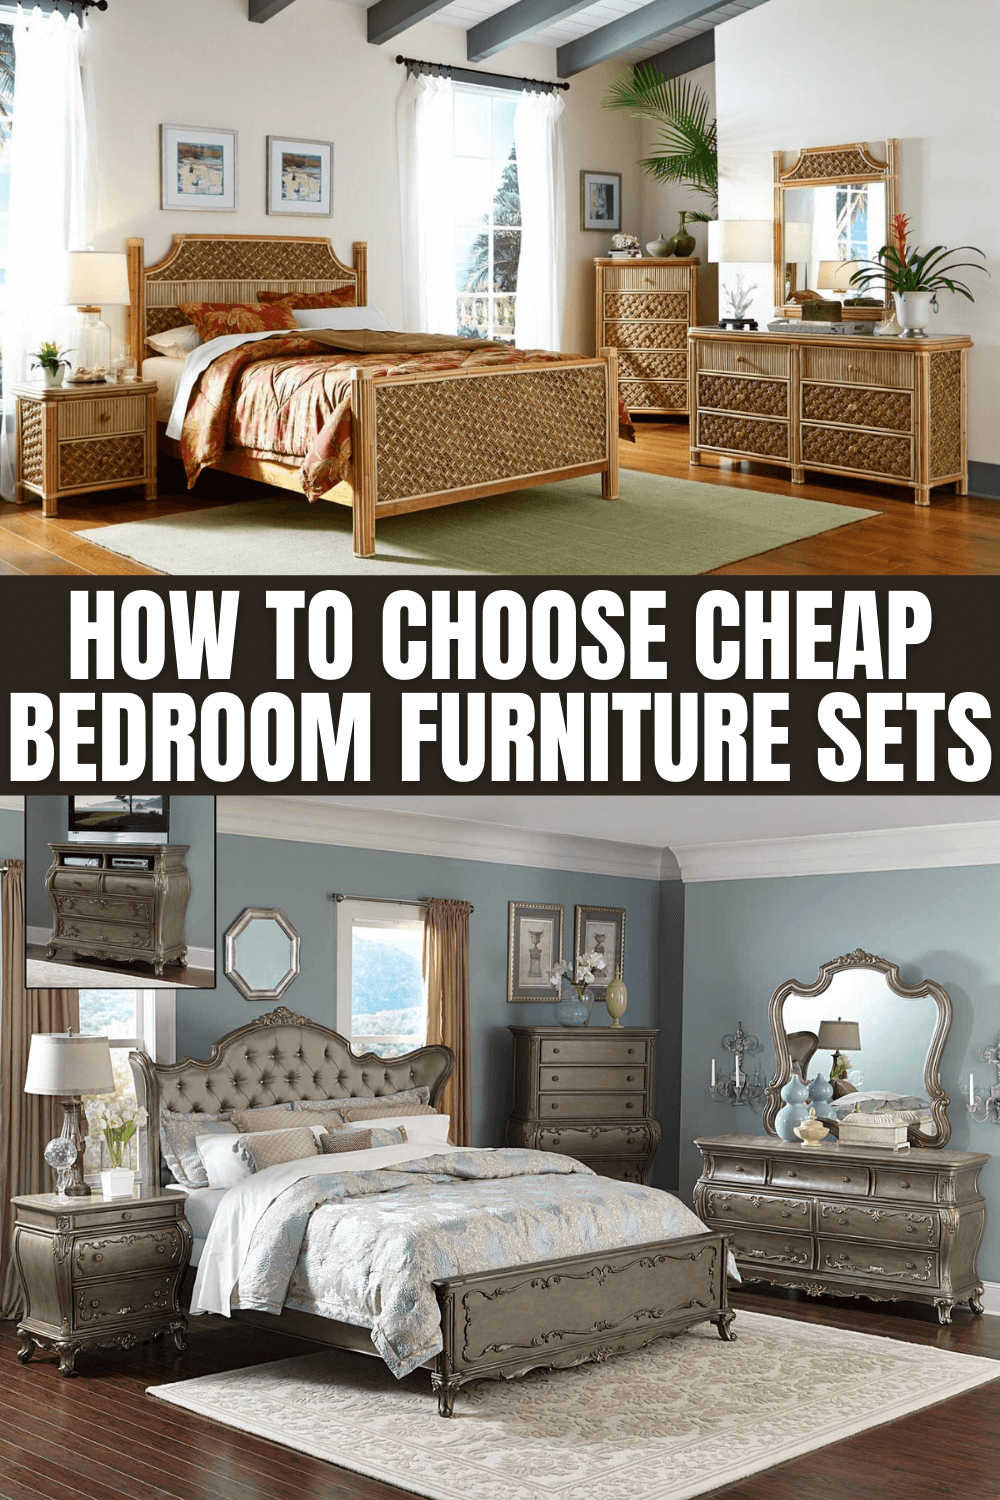 HOW TO CHOOSE CHEAP BEDROOM FURNITURE SETS